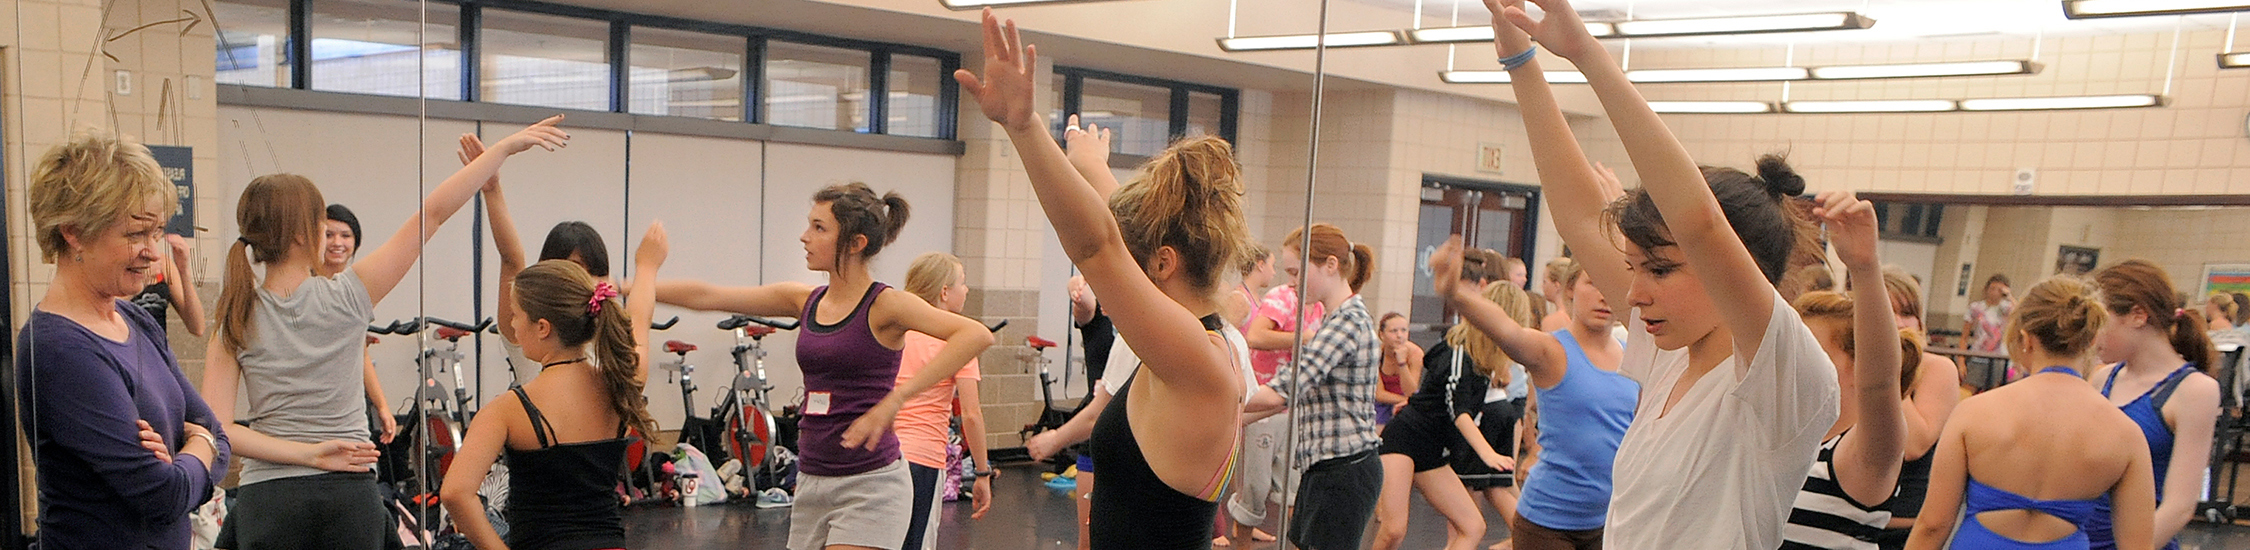 dance students practicing in the studio